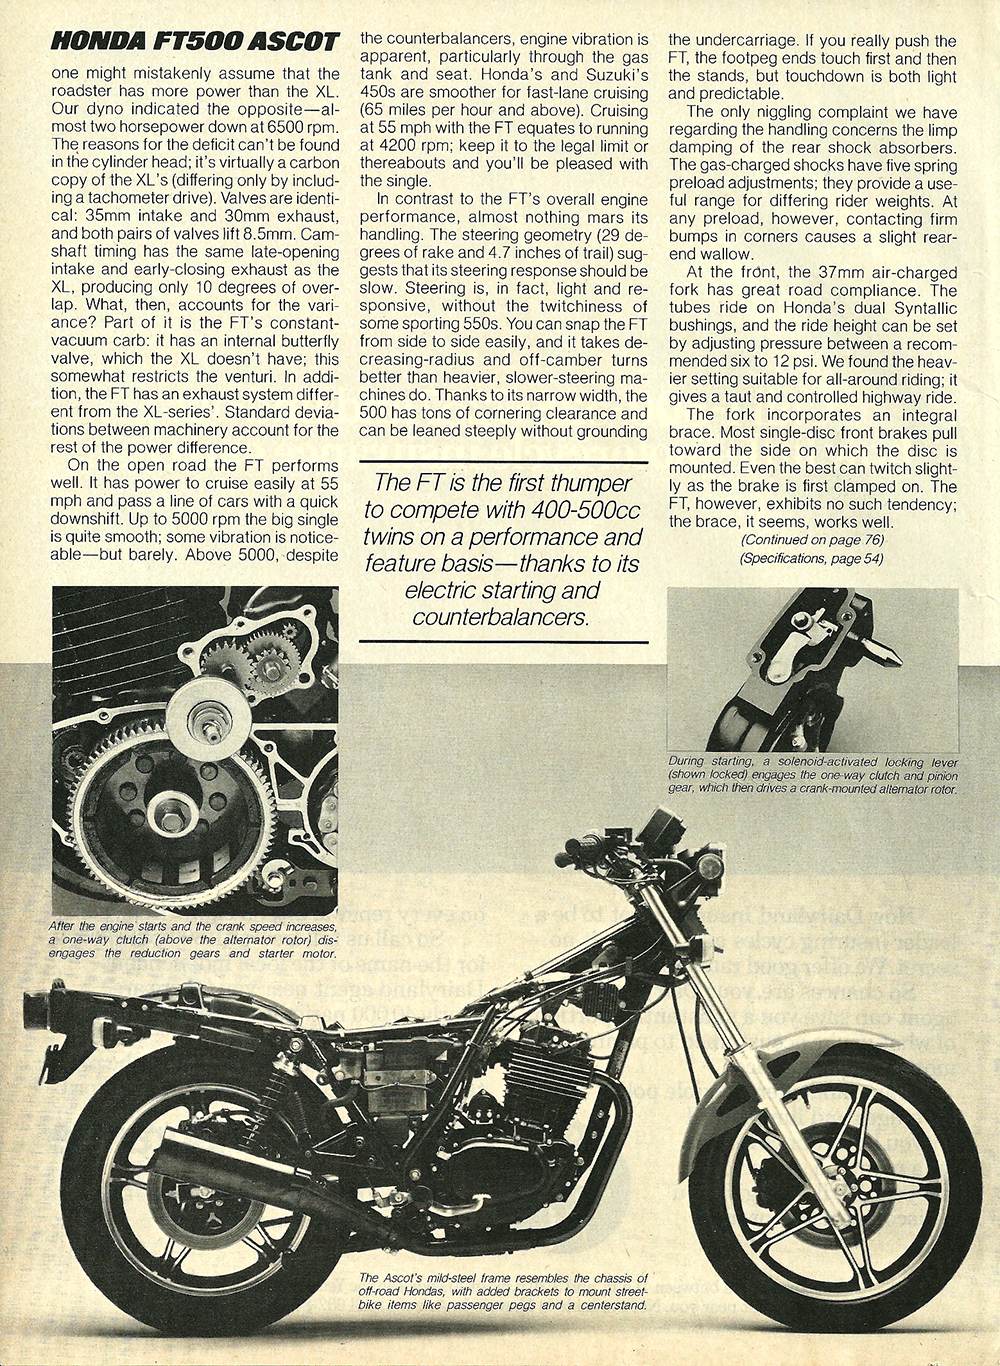 1982 Honda FT500 Ascot road test 2 06.jpg